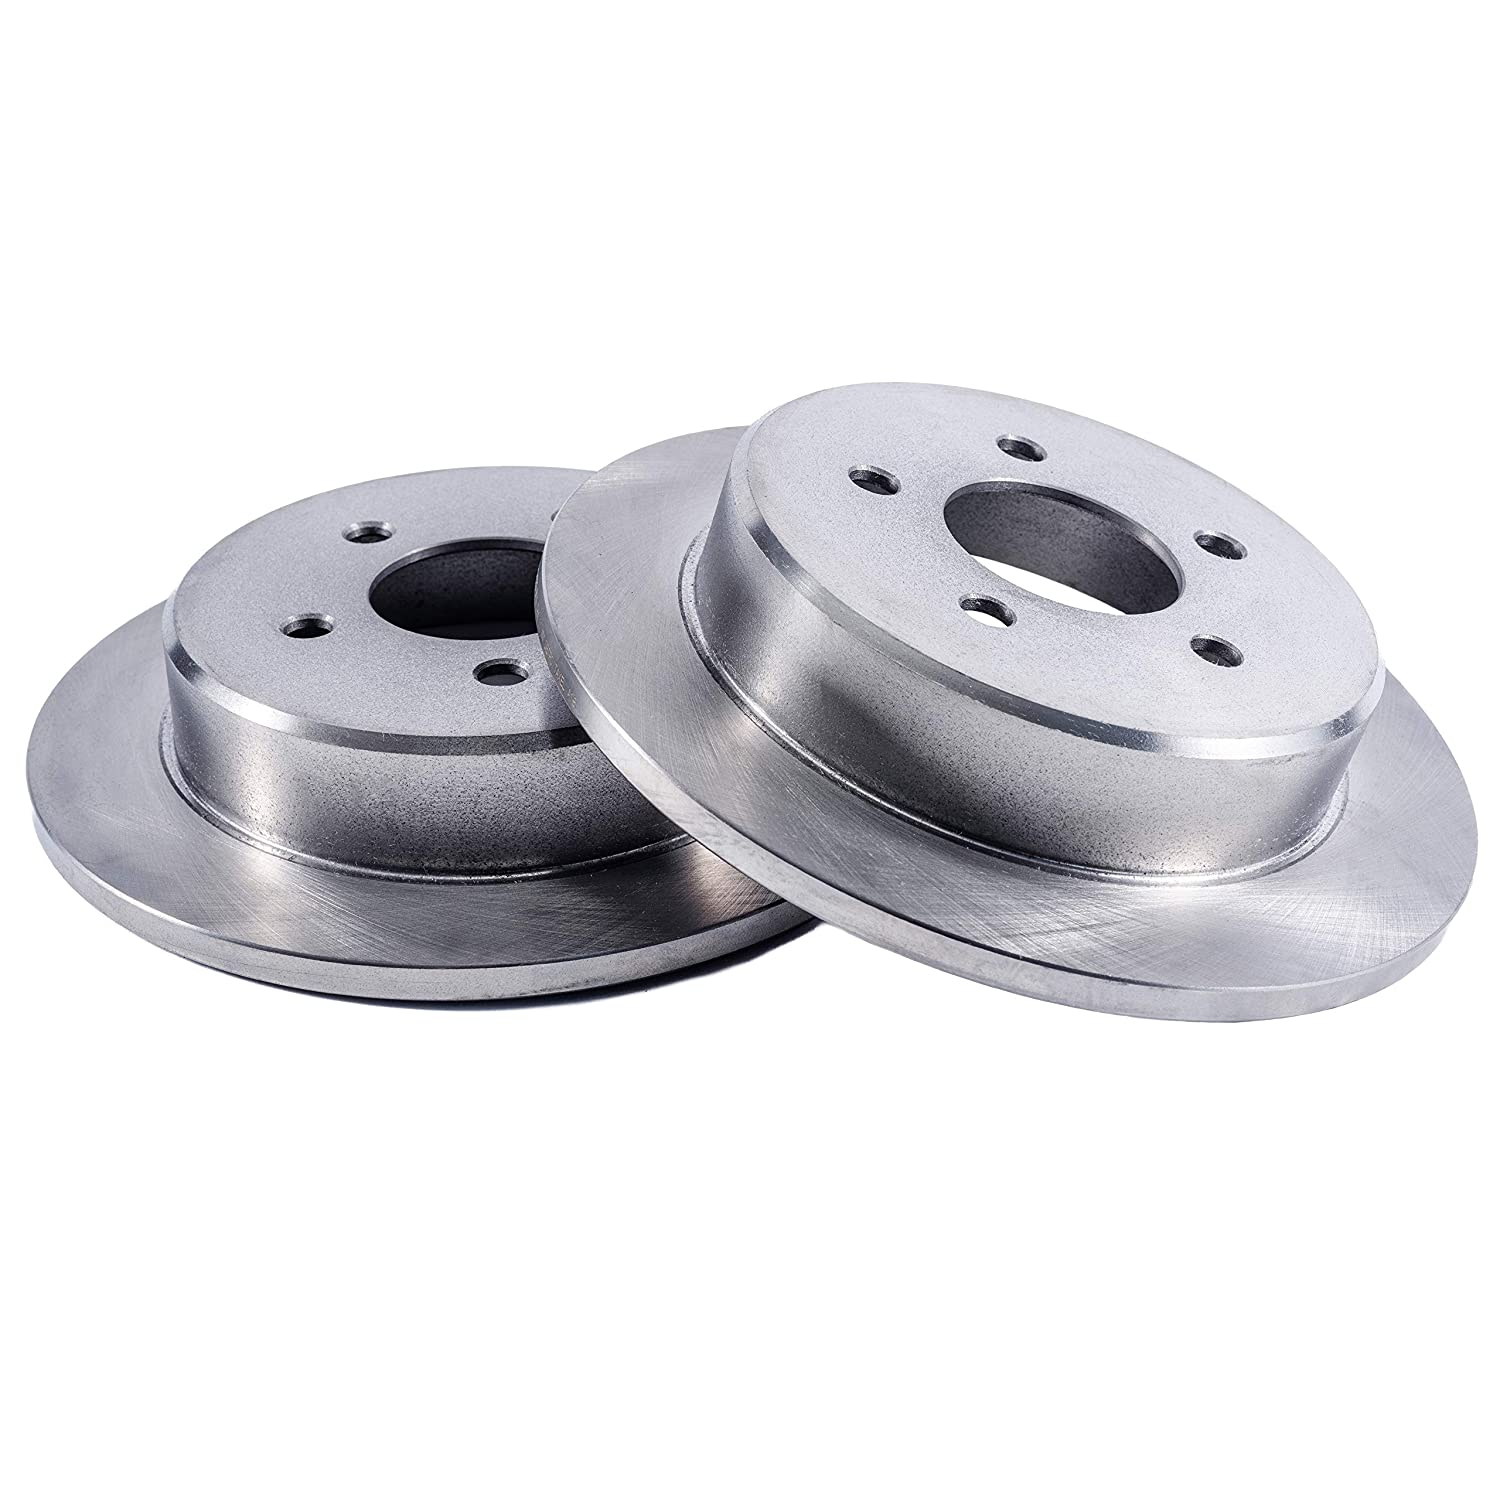 Detroit Axle Pair 2013-2016 Escape 2 Rear Drilled and Slotted Disc Brake Rotors w//Ceramic Pads w//Hardware for 2013-2017 Ford C-Max - - 2014-2017 Transit Connect